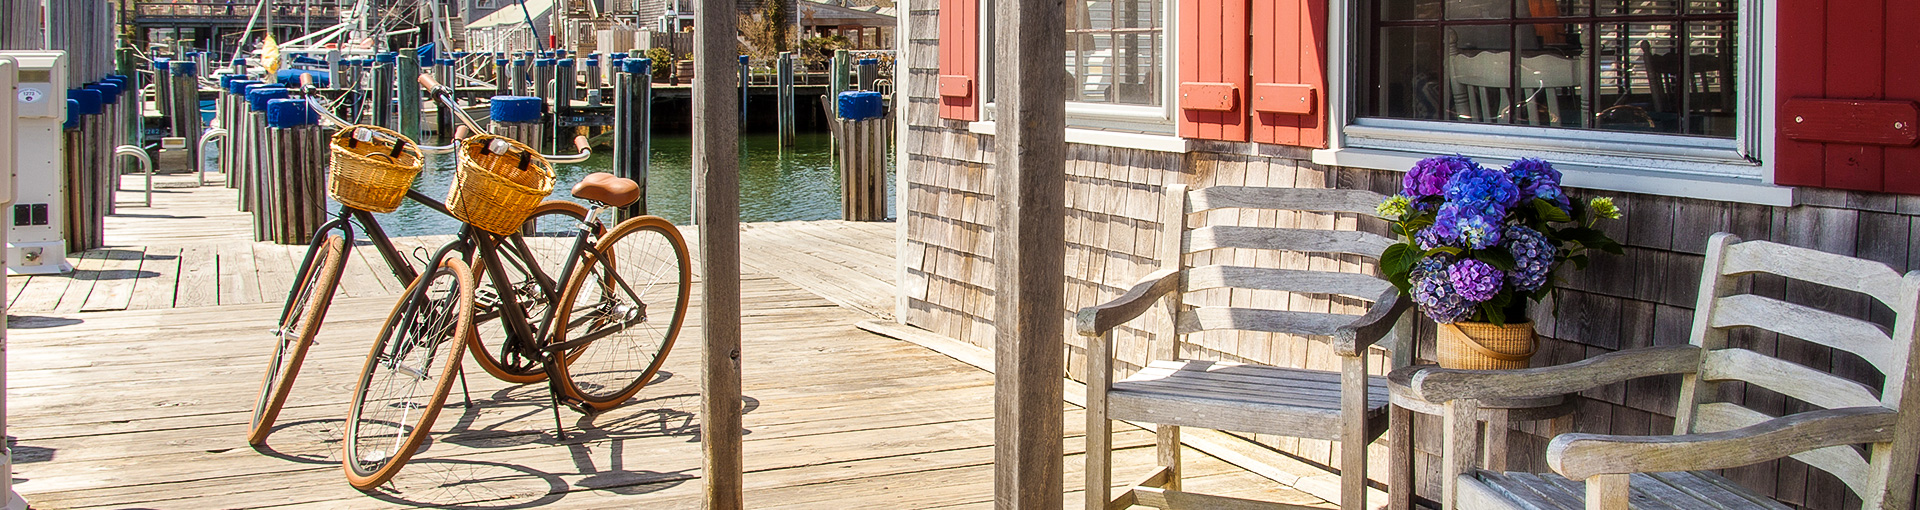 White Elephant Resorts, Nantucket Special Offers